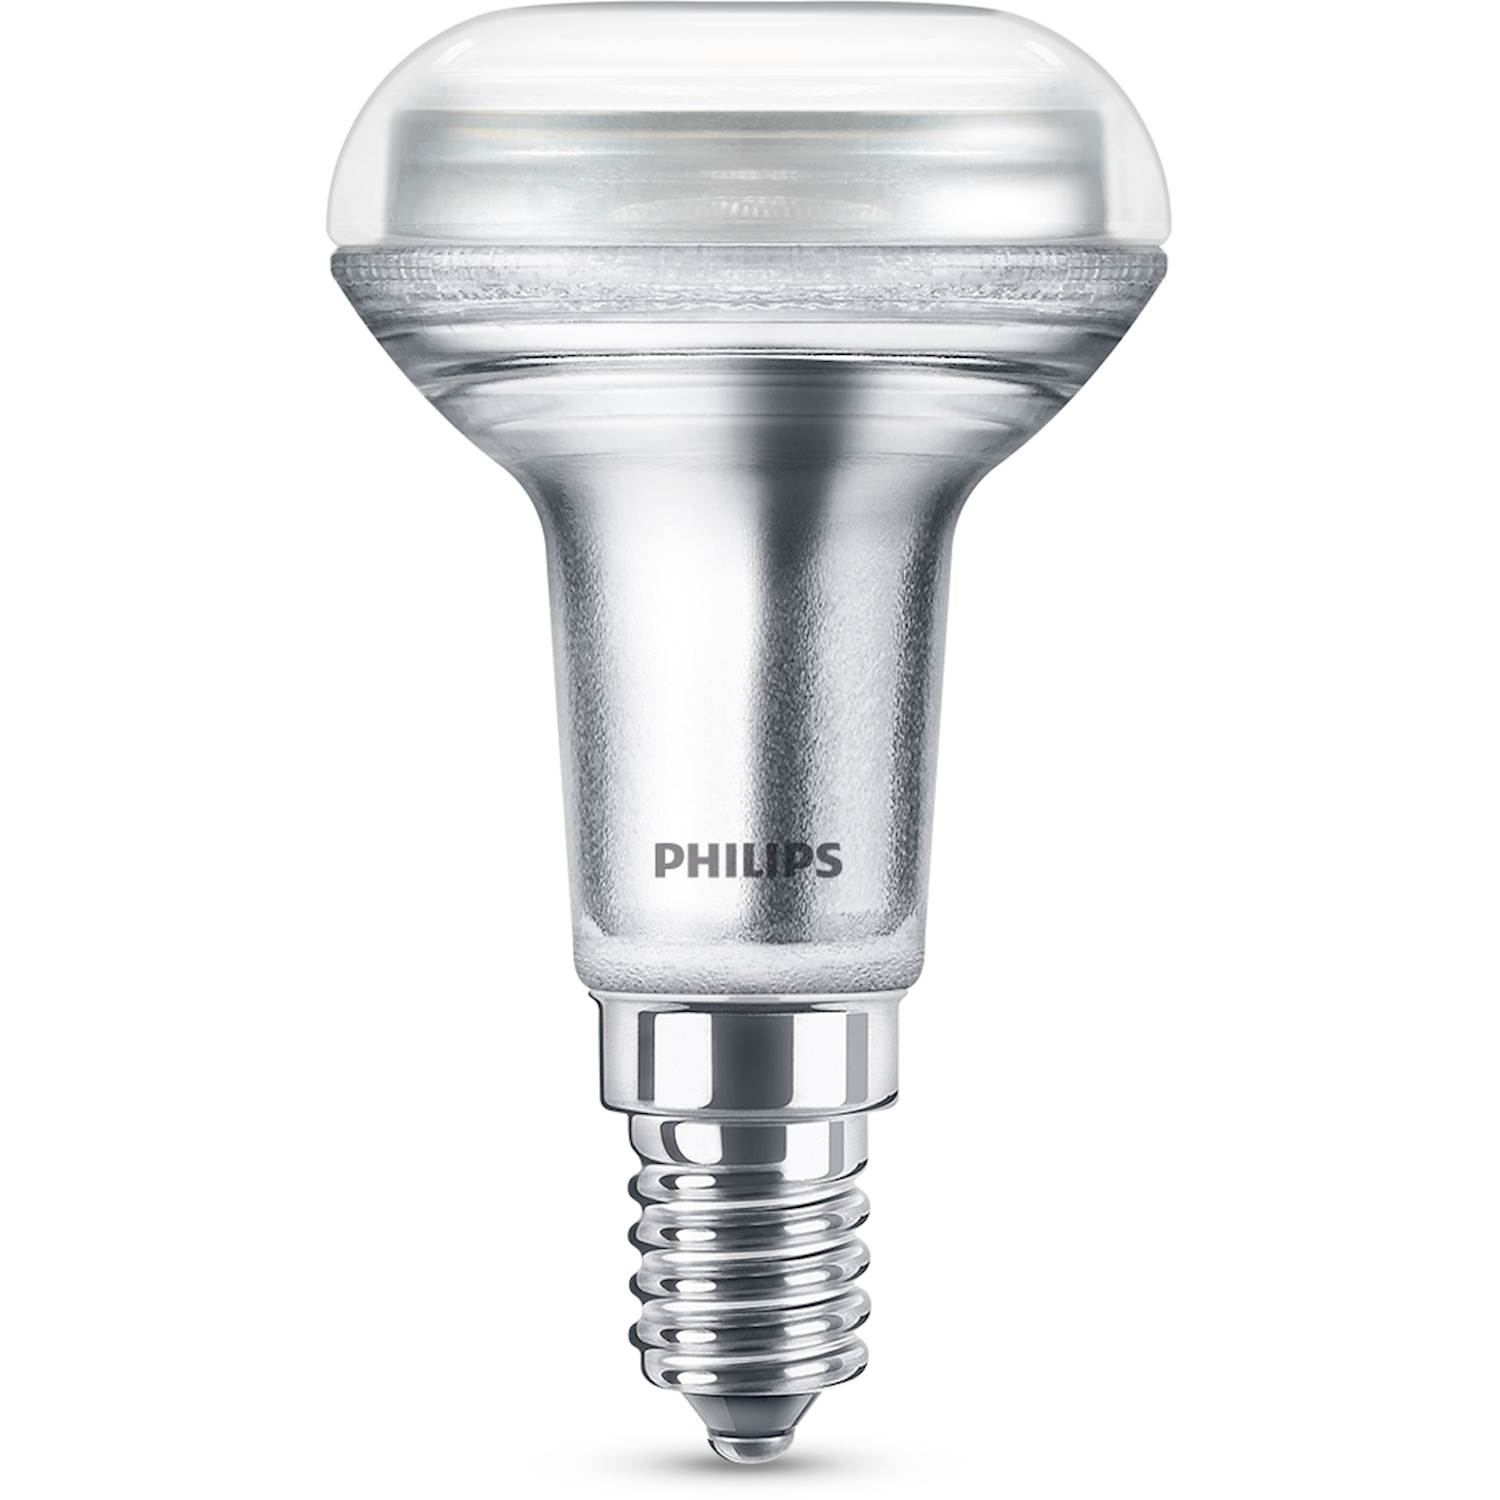 Philips LEDCL 25W R50 E14 36D ND